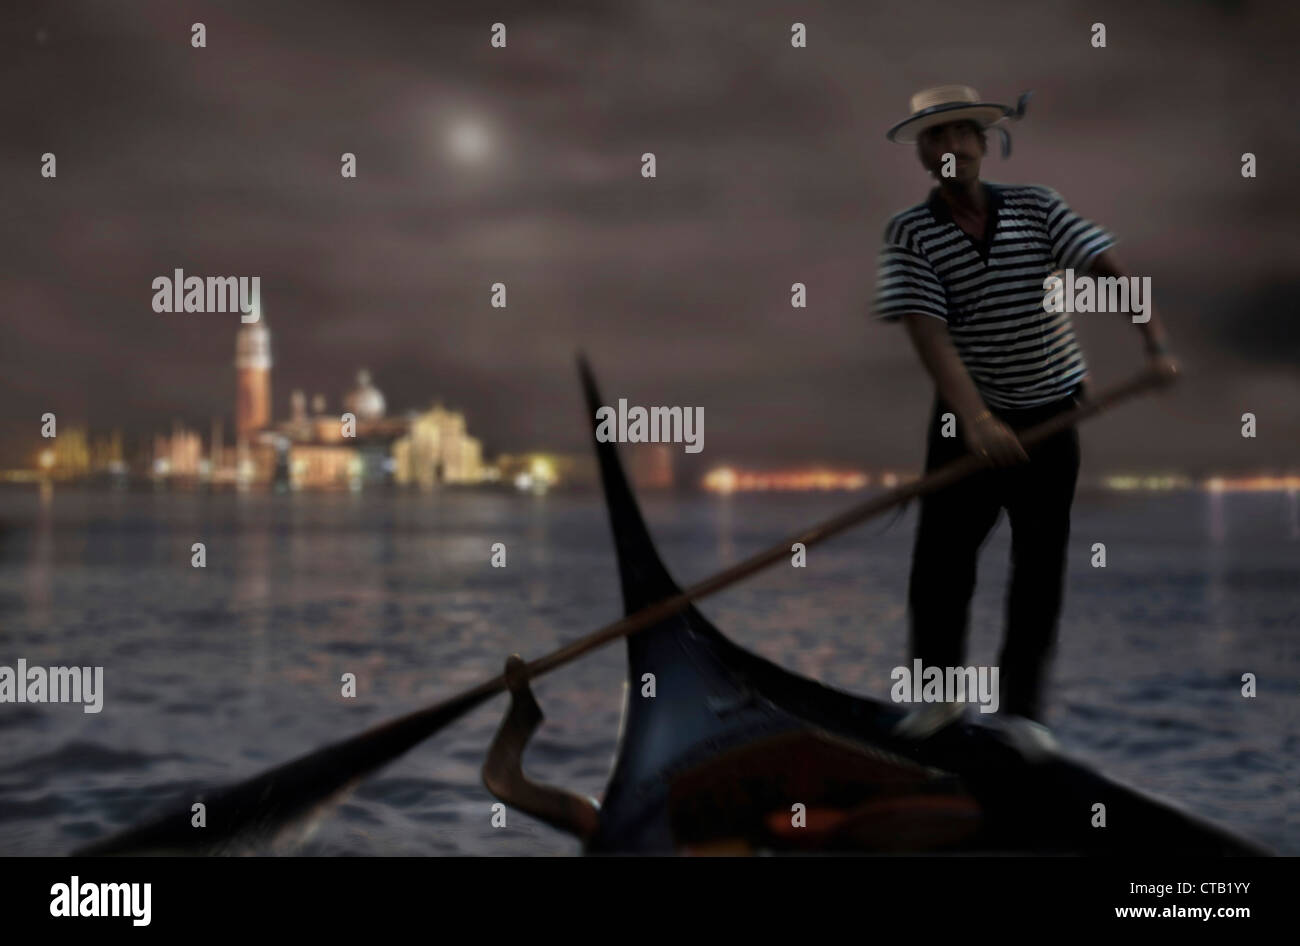 Gondolier wtih gondola at night with a city view in the background, Venice, Italien - Stock Image